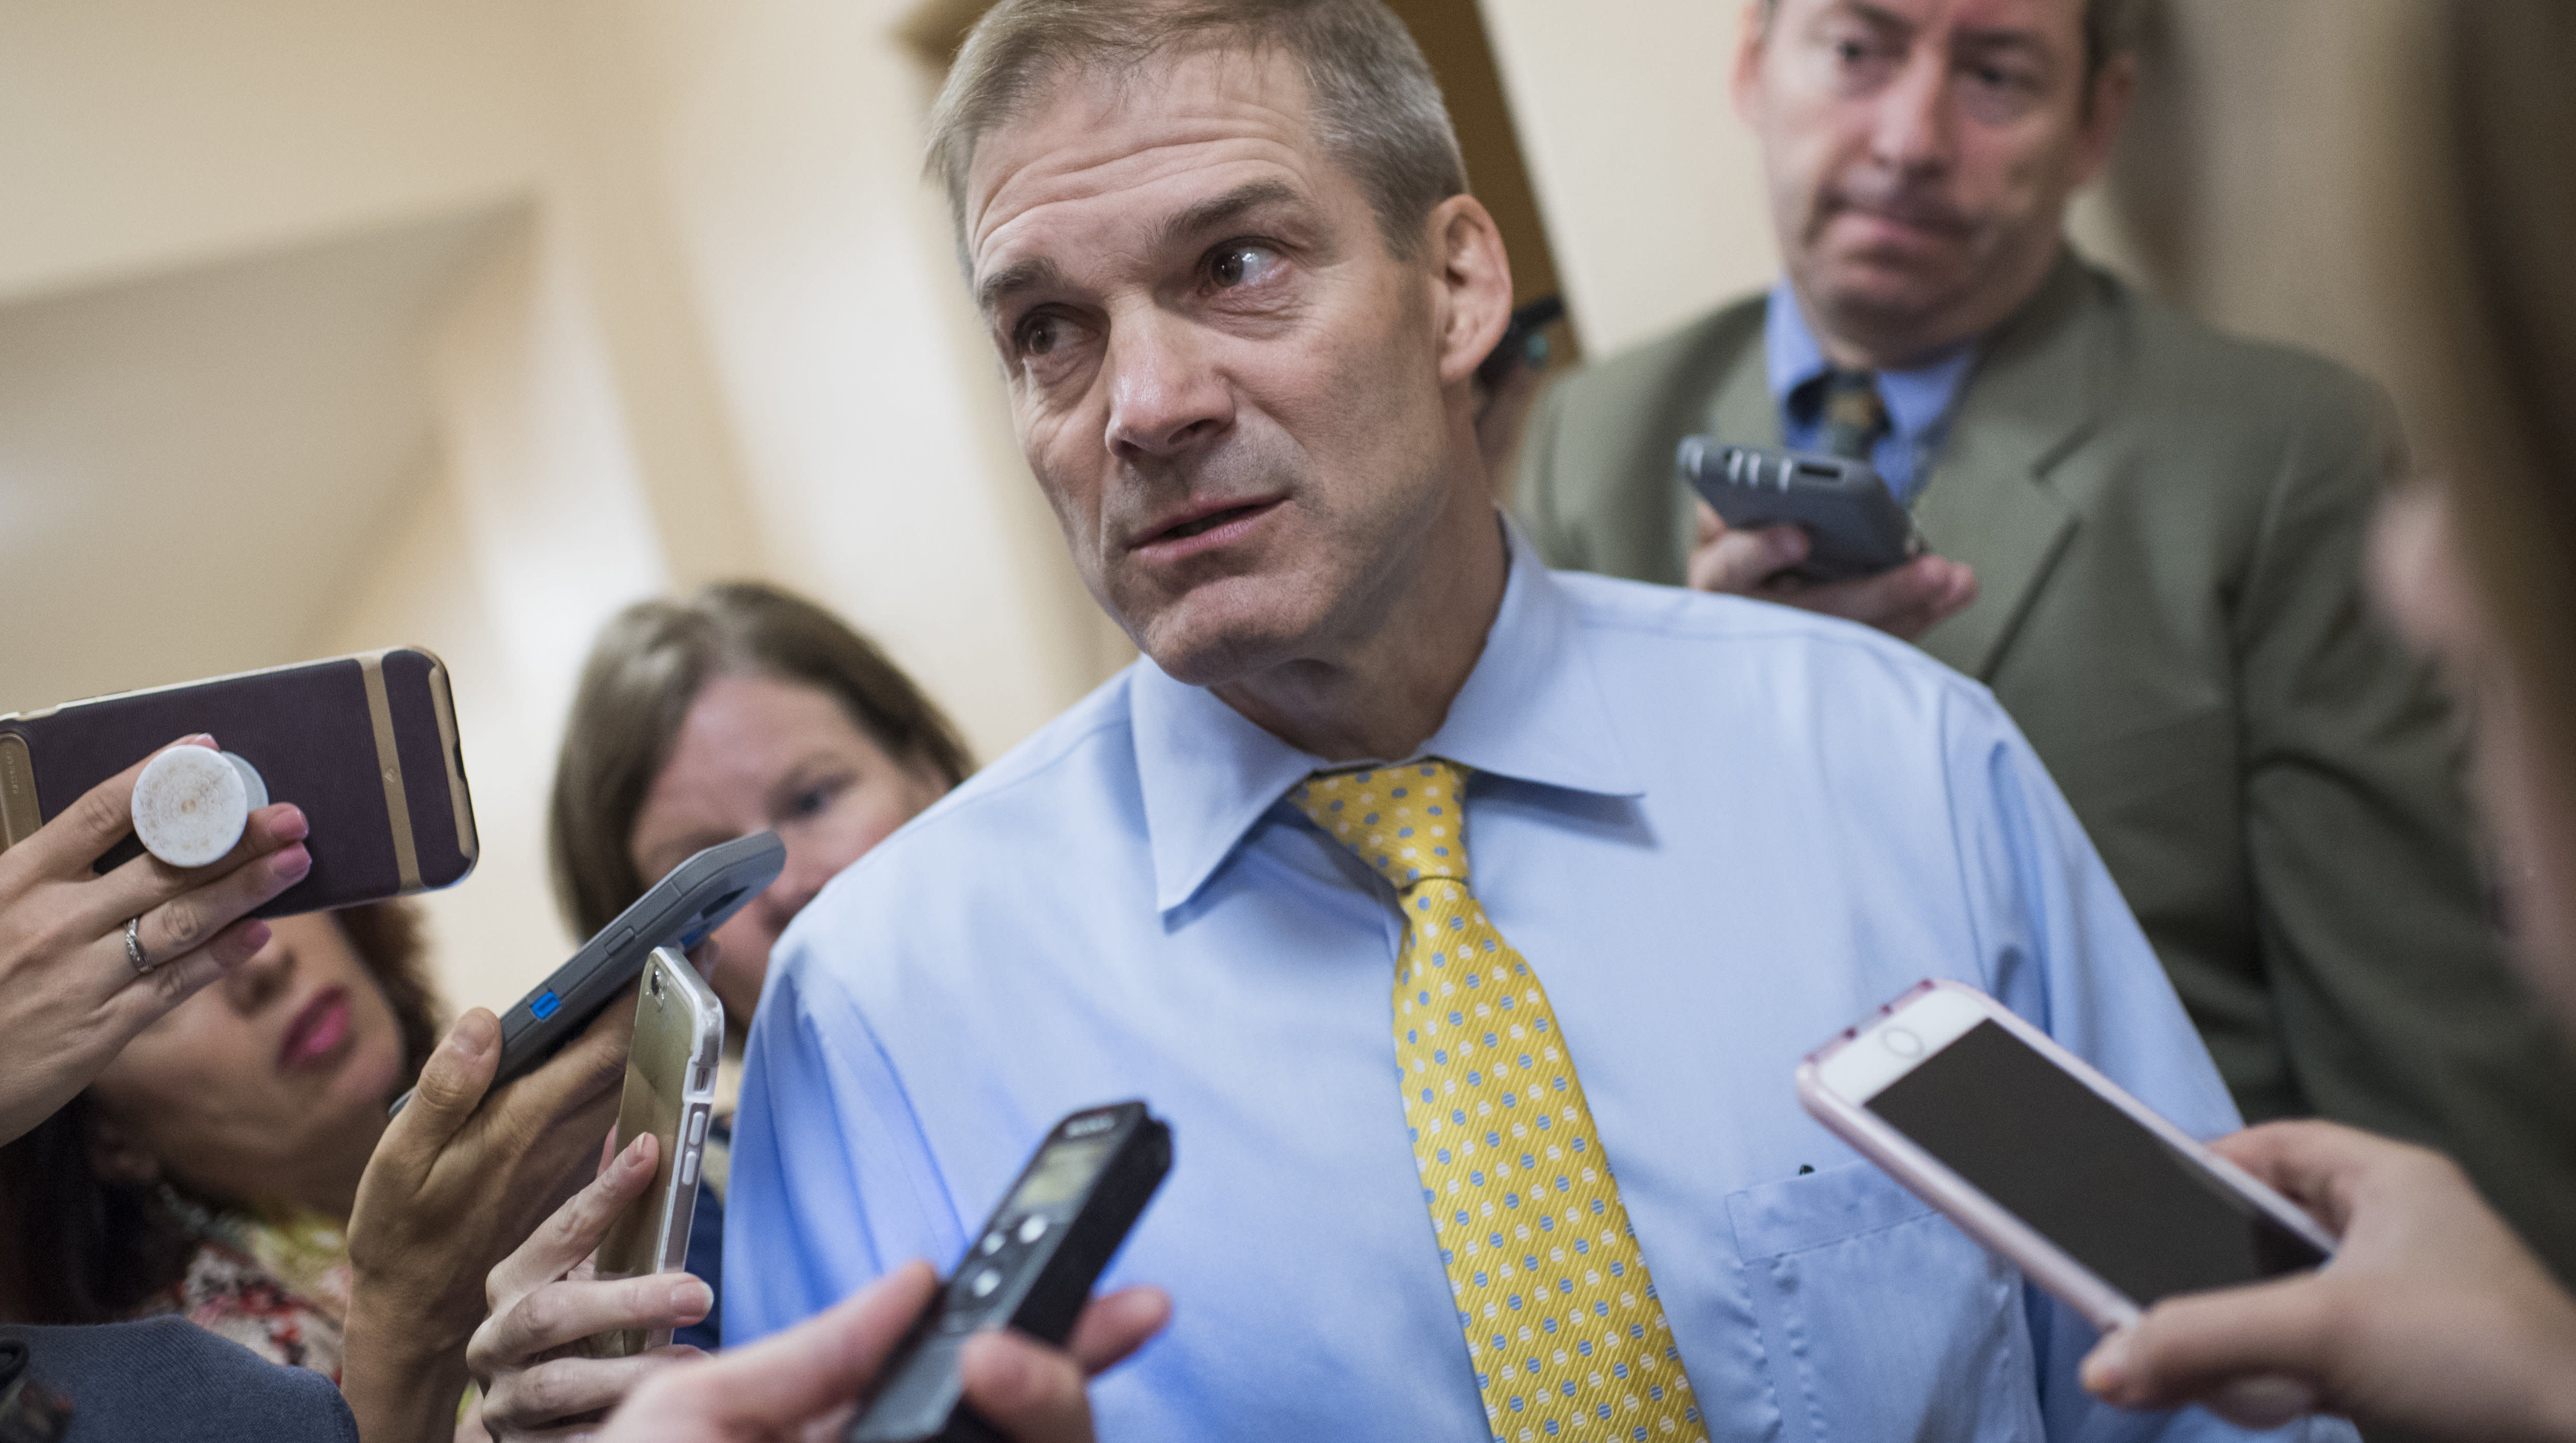 Rep. Jim Jordan Is Running To Be Speaker Of The House. He's Also Accused Of Covering Up Sexual Abuse.